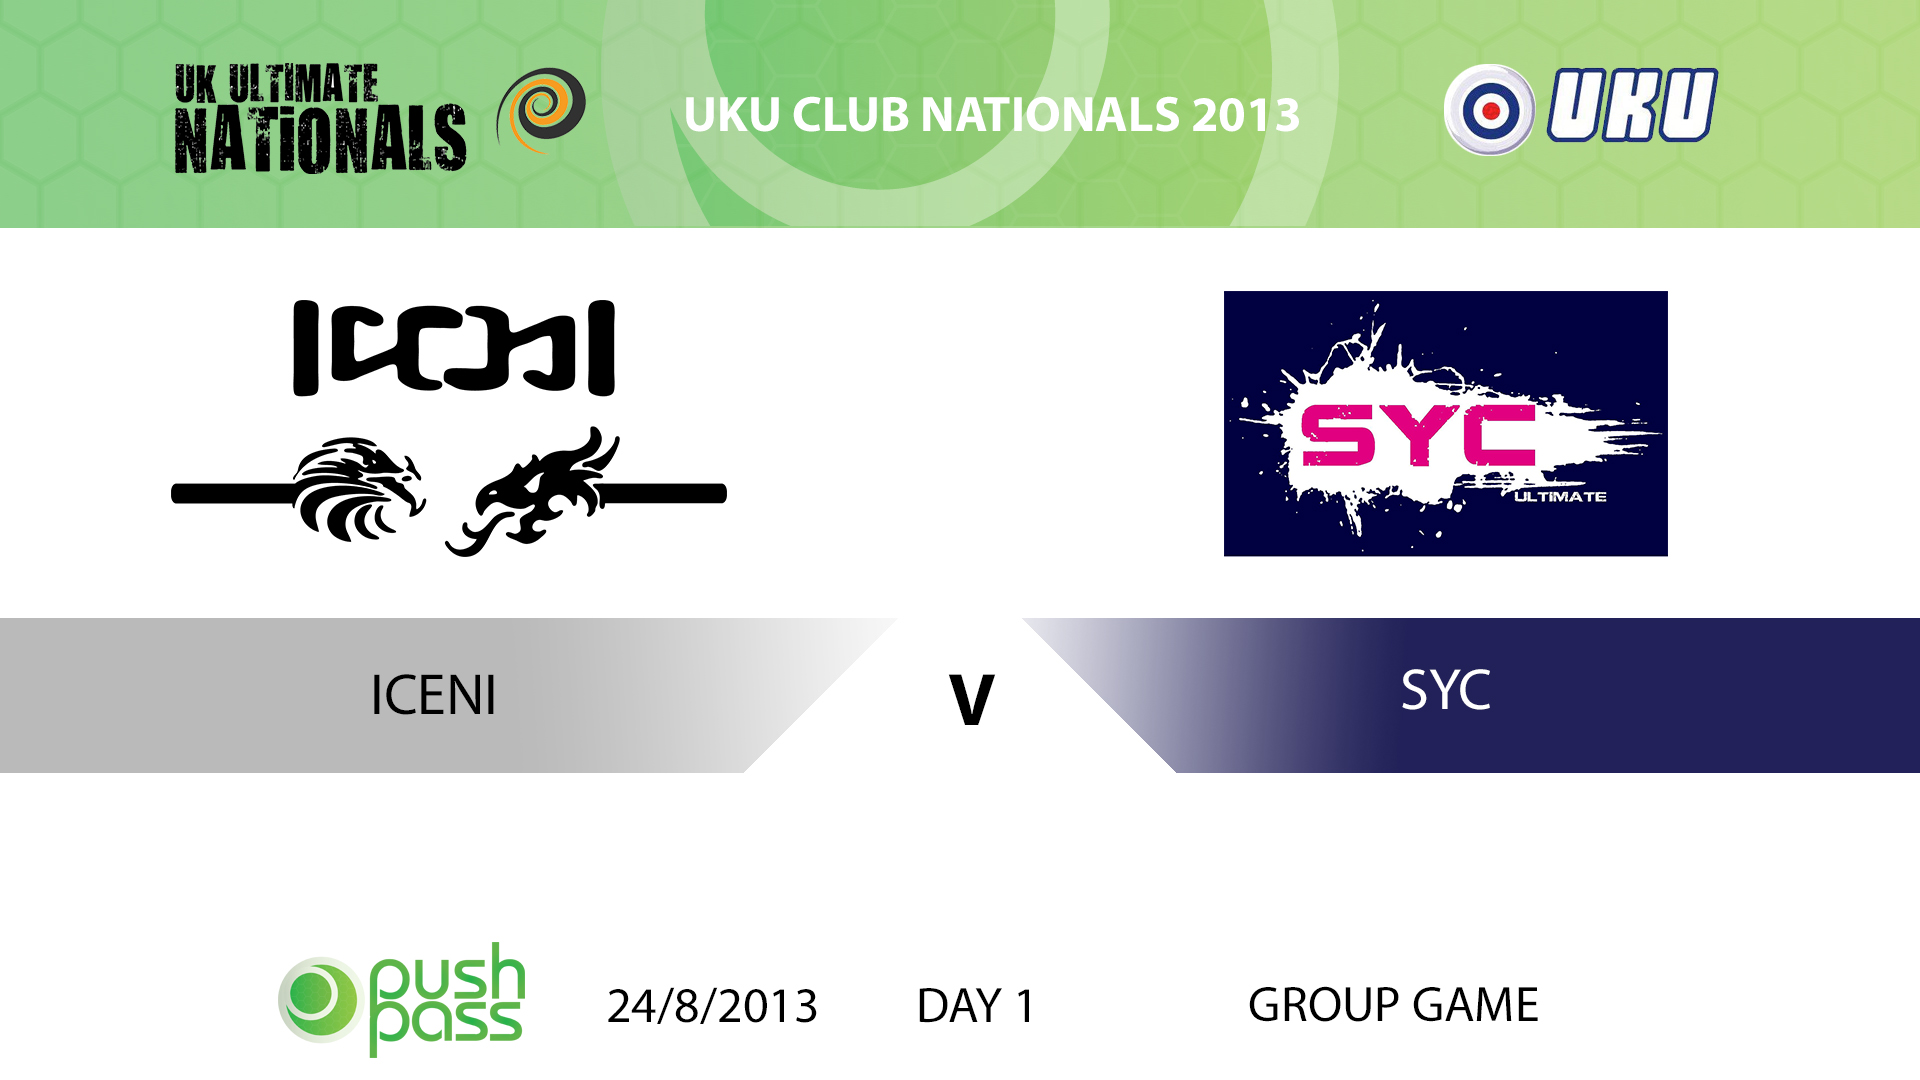 UKU Club Nationals 2013: Iceni v SYC